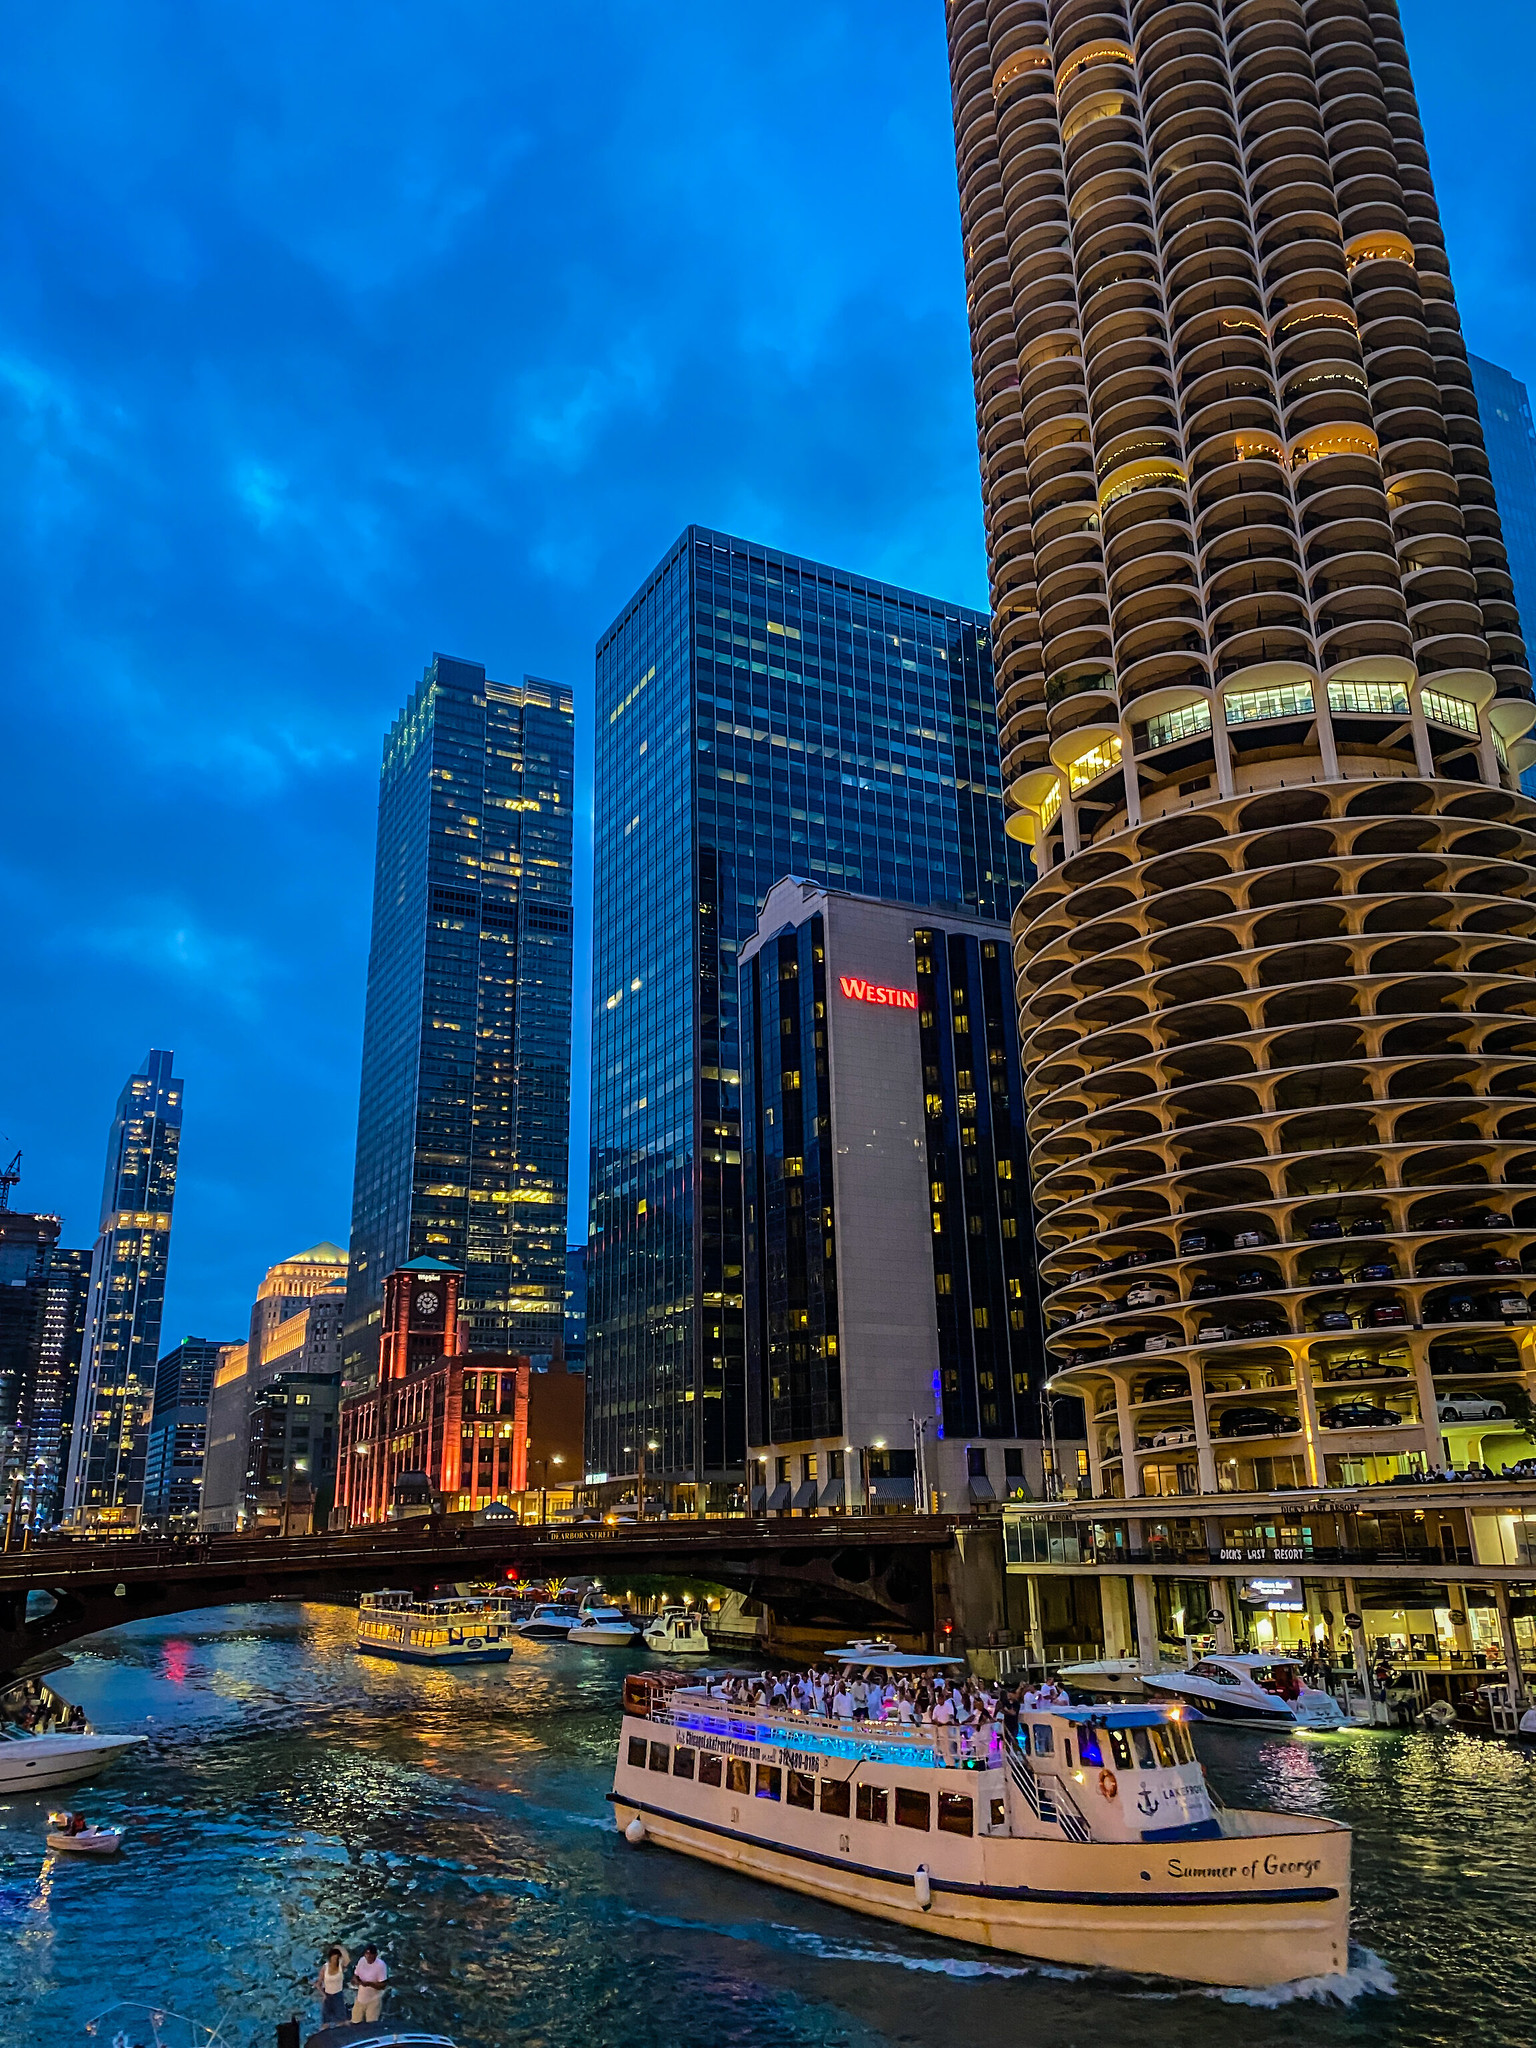 First Time In Chicago: The Perfect 3 Day Itinerary | Chicago Travel Guide | 72 Hours in Chicago | 3 Days in Chicago Itinerary | What to do in Chicago | Where to Stay in Chicago | Ultimate Chicago Bucket List | Top Things to Do in Chicago | First Timer's Guide to Chicago | Chicago River at Night